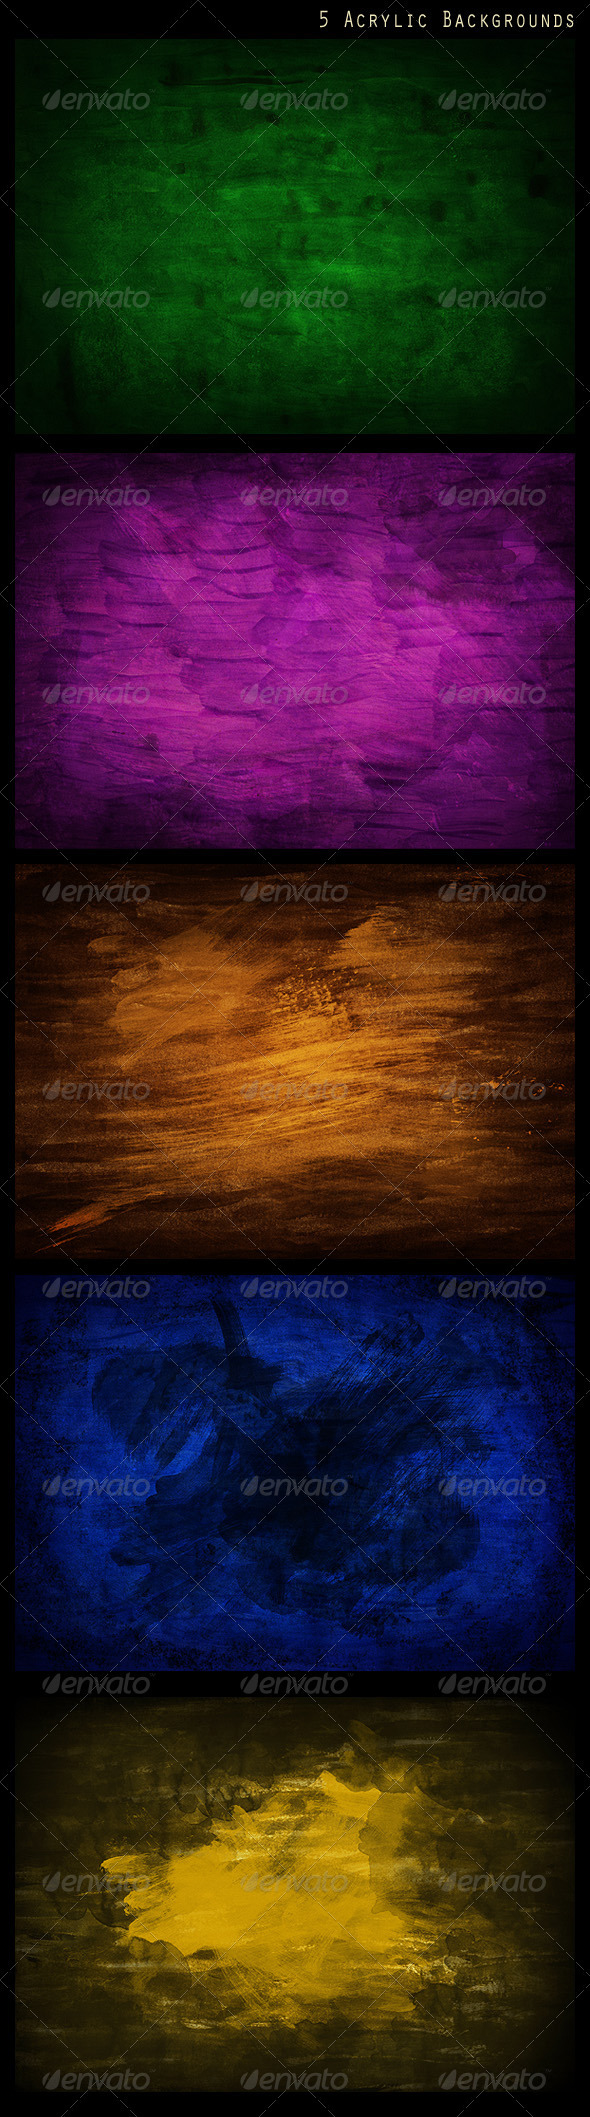 GraphicRiver 5 Acrylic Backgrounds 2630157